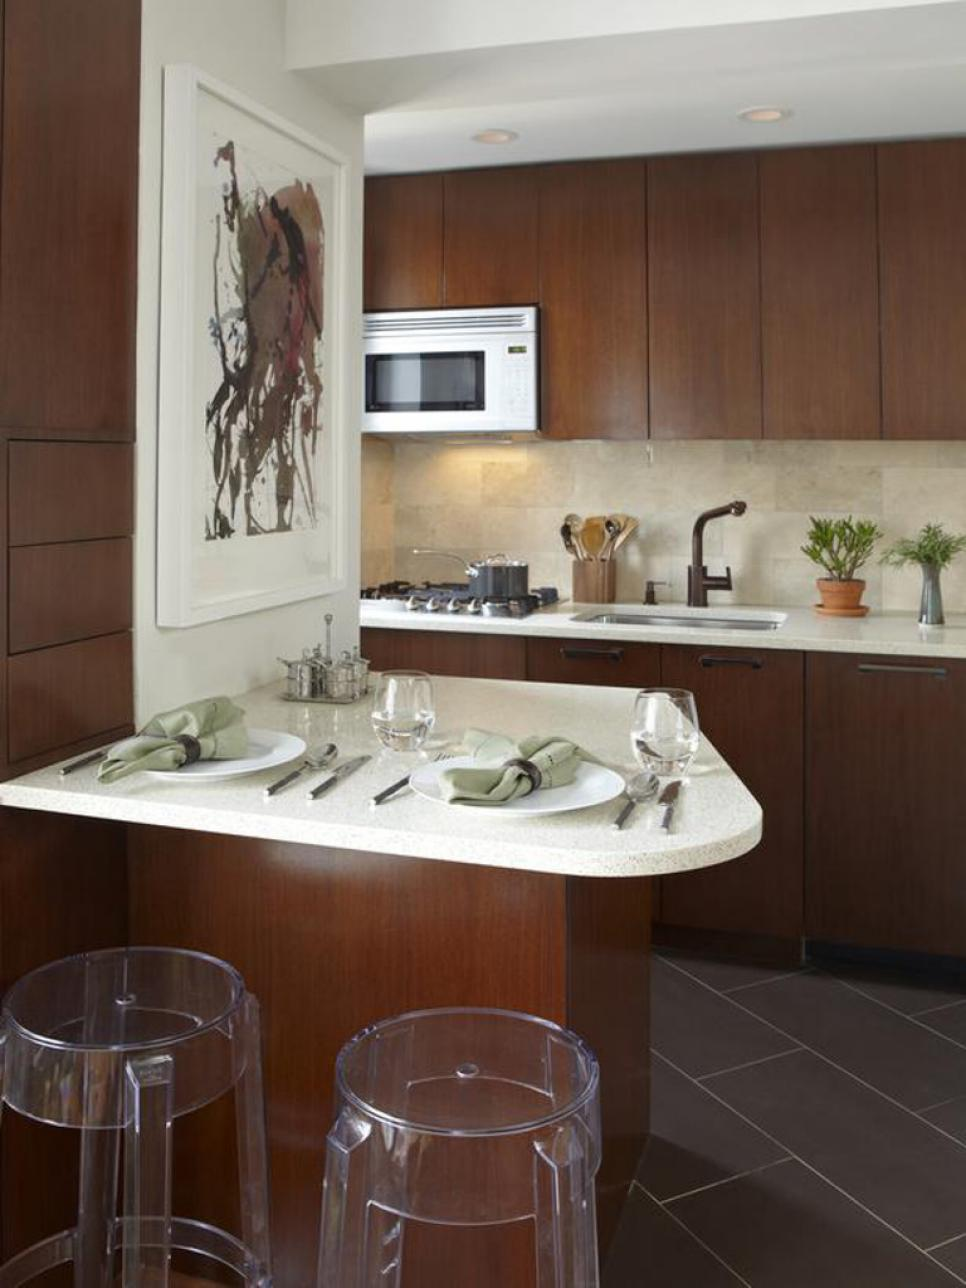 from outdated to sophisticated - Furniture In Kitchen